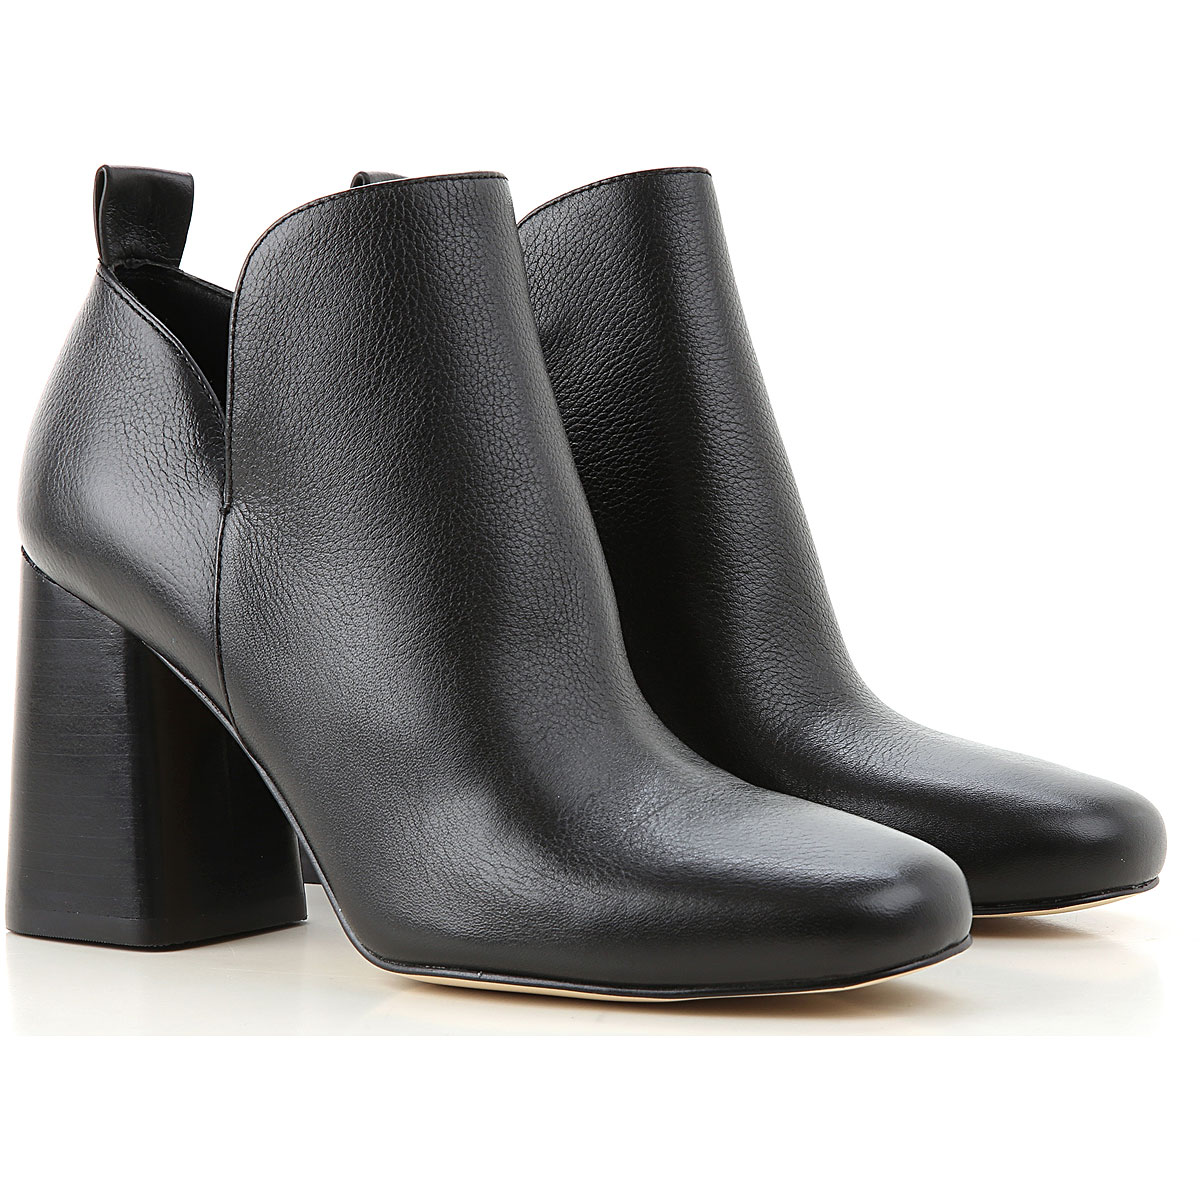 Michael Kors Boots for Women, Booties On Sale, Black, Leather, 2019, 6 7 8 8.5 9 9.5